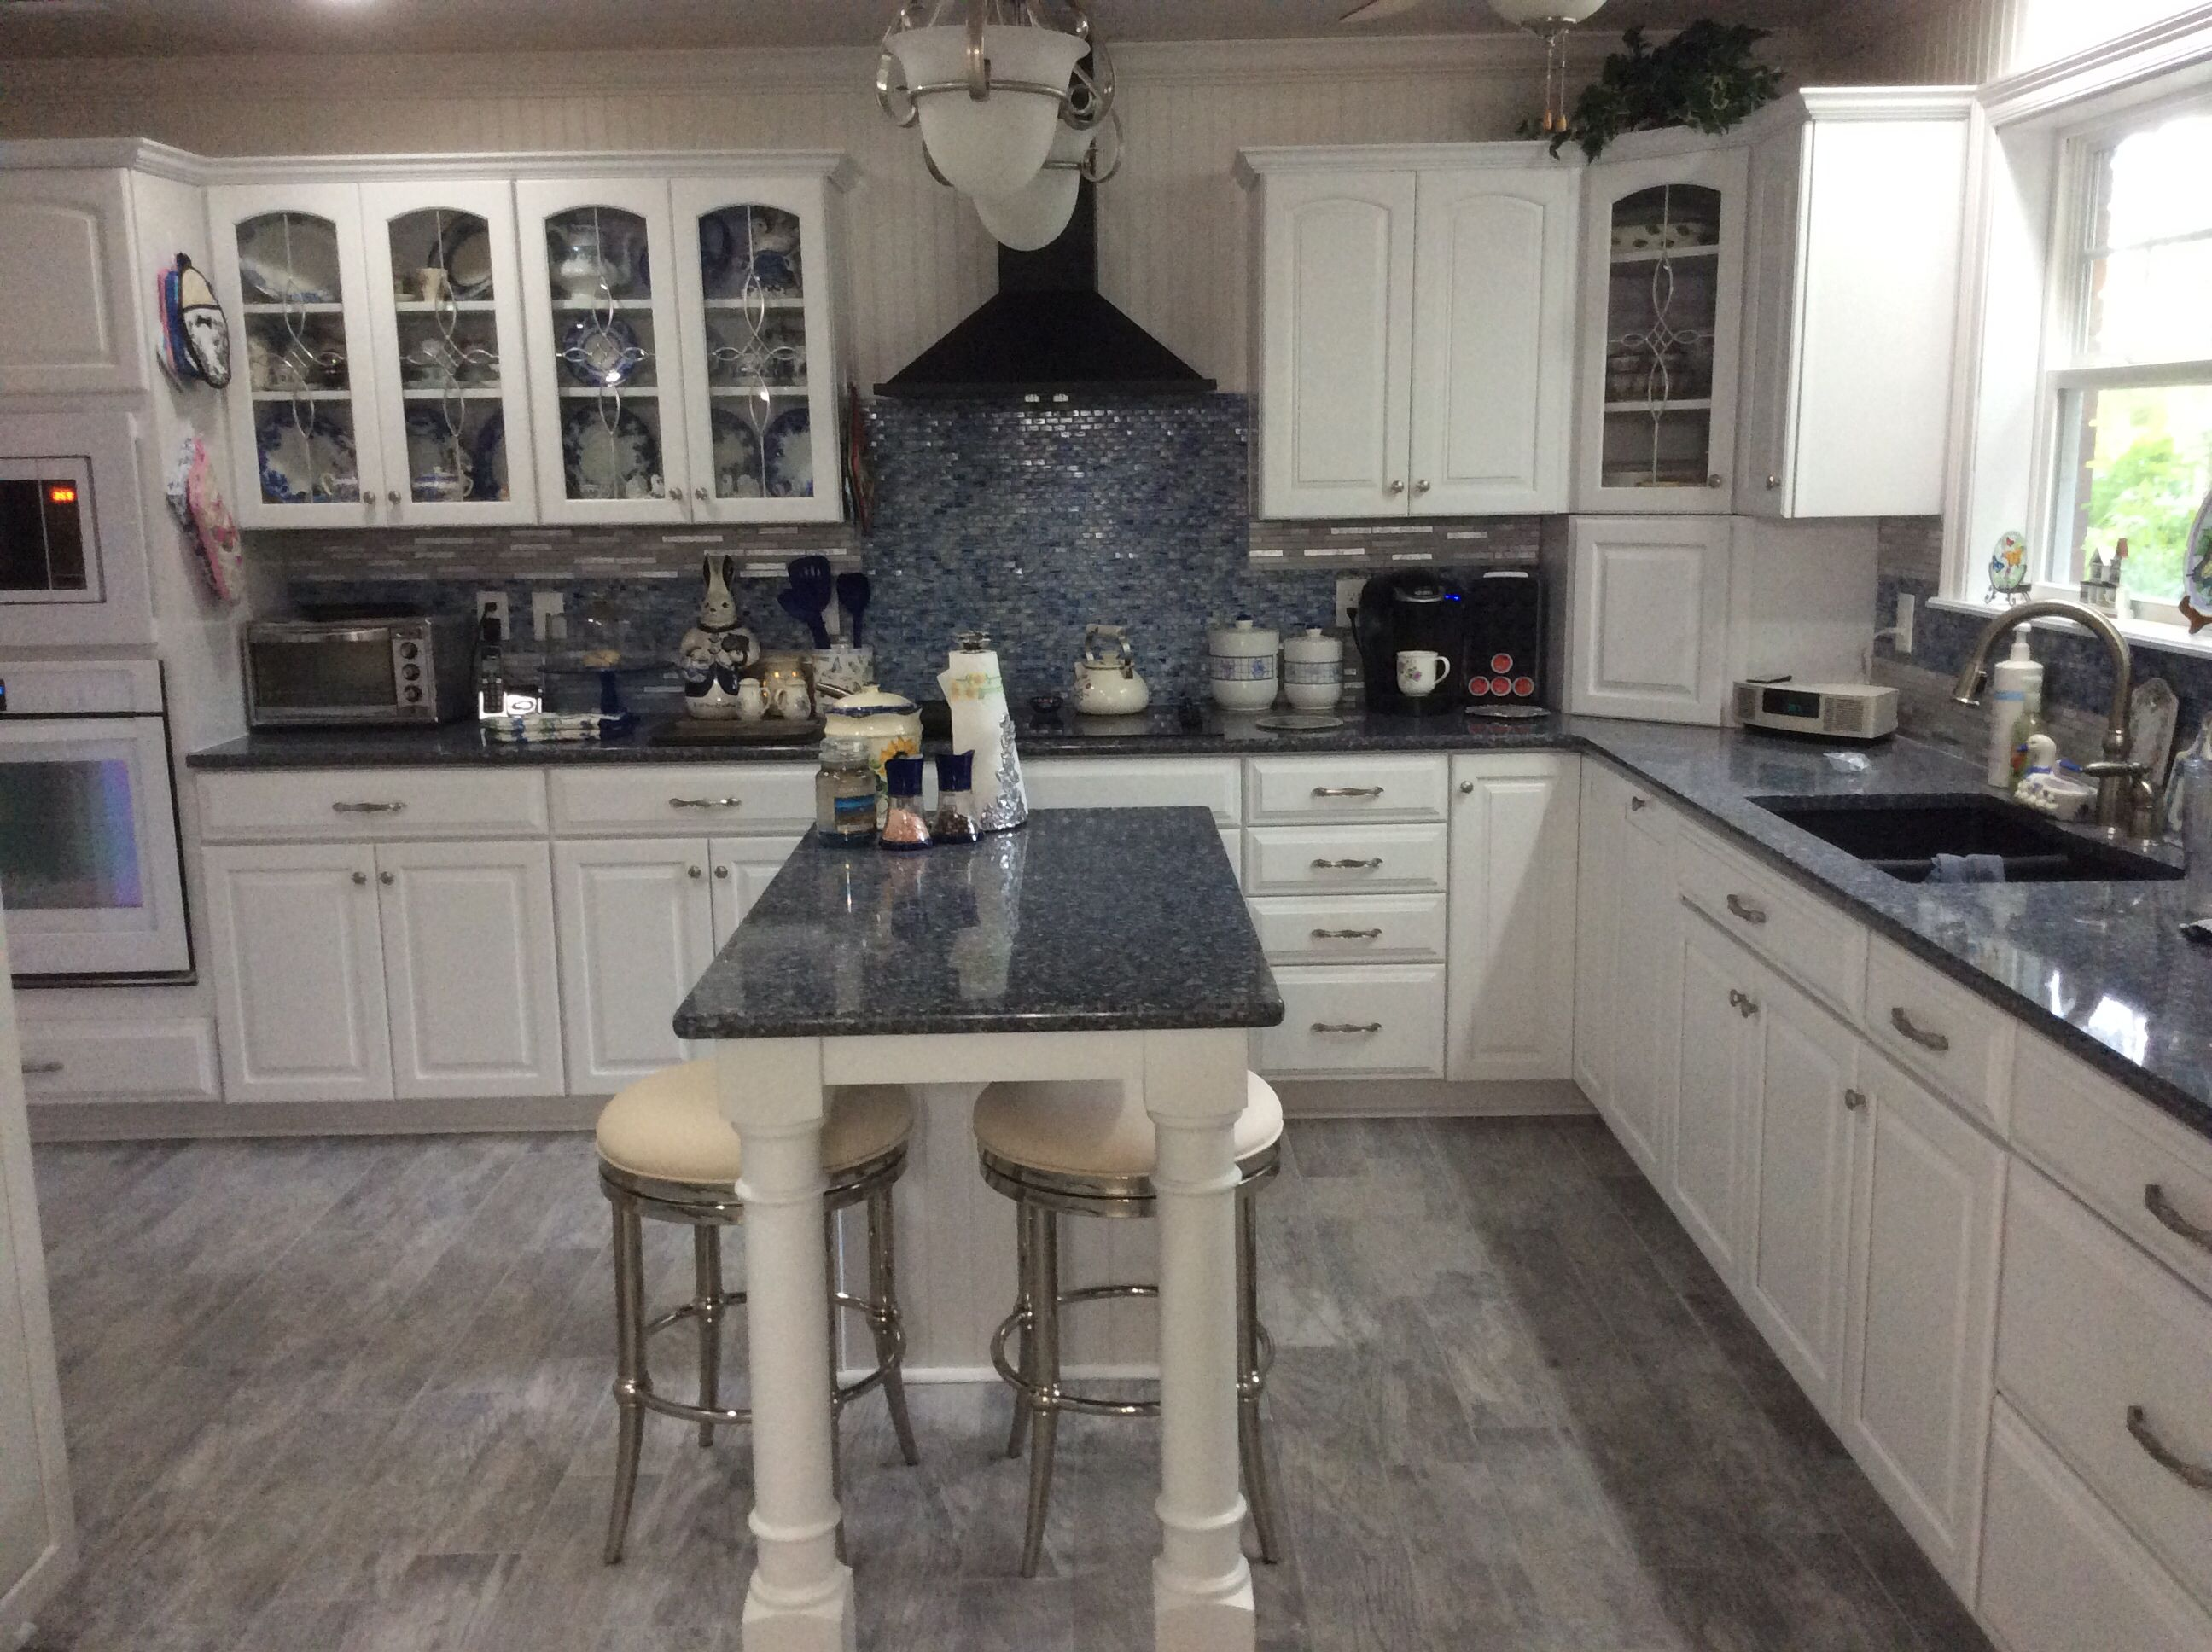 home depot kitchen flooring Blue and white kitchen Cambria Quartz countertop Parys Kraft maid cabinets Home Depot